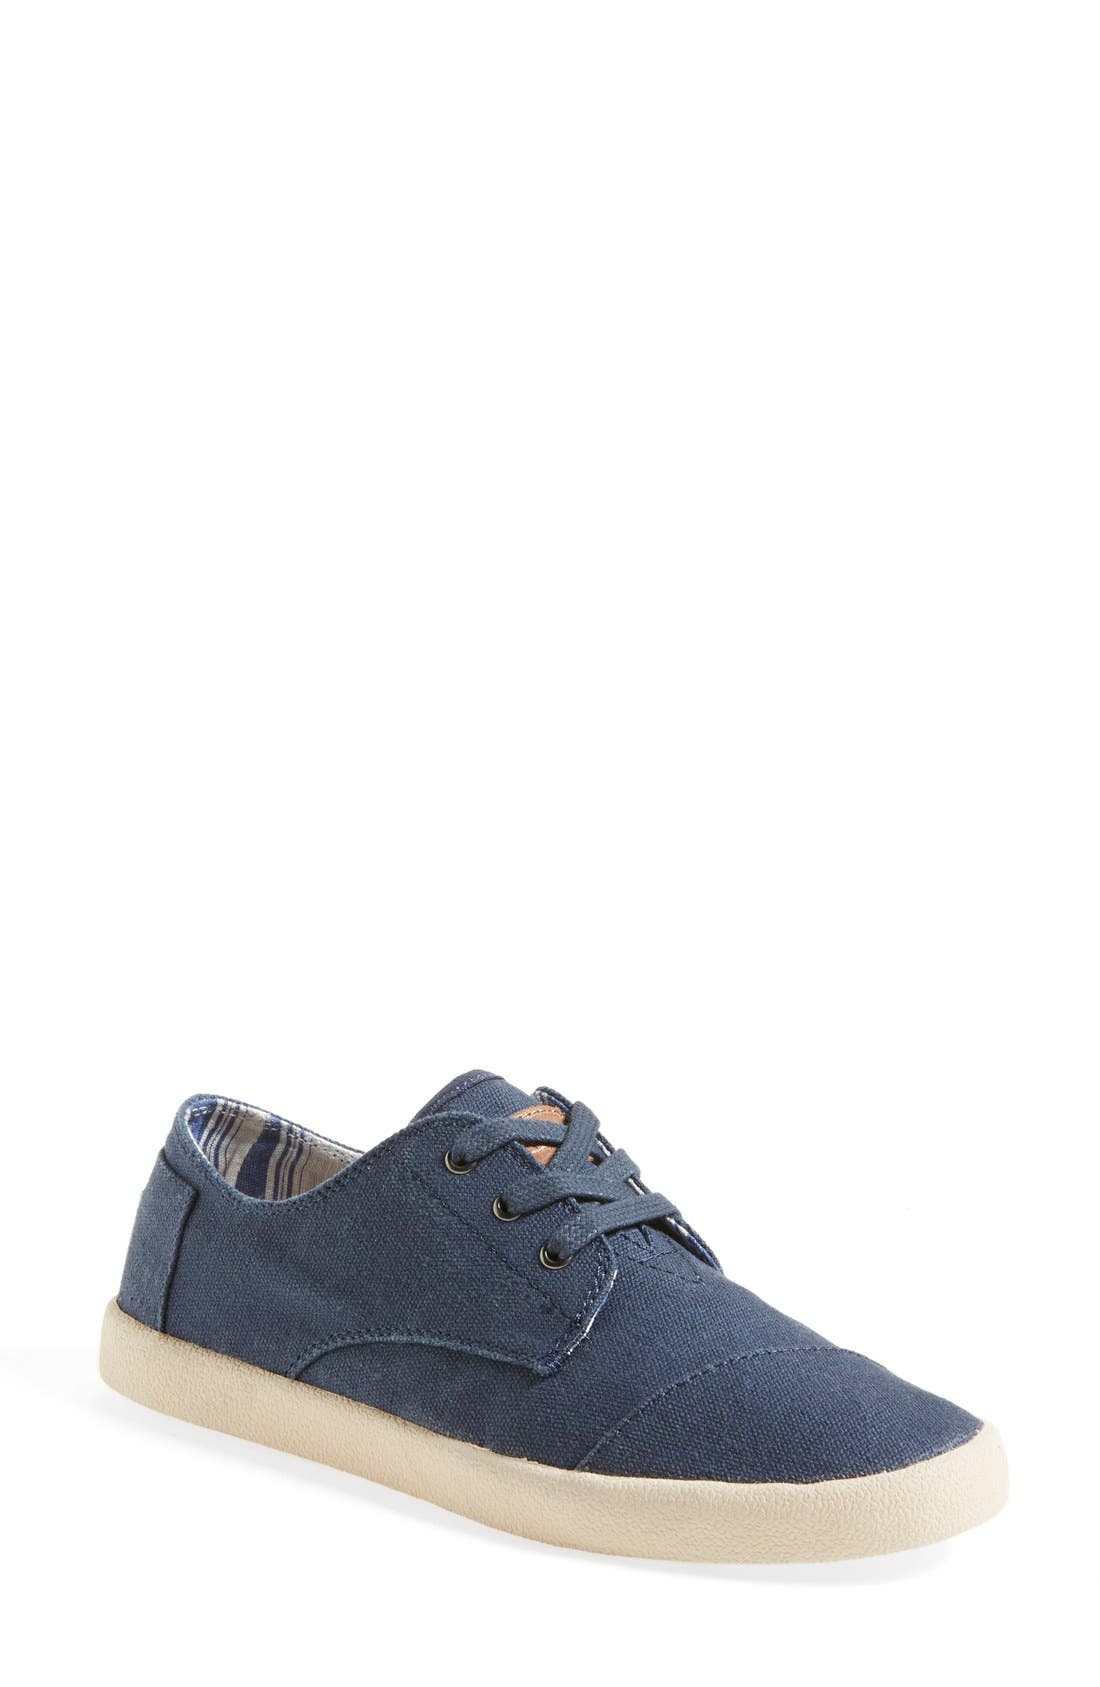 Alternate Image 1 Selected - TOMS 'Paseo Classic' Sneaker (Women)